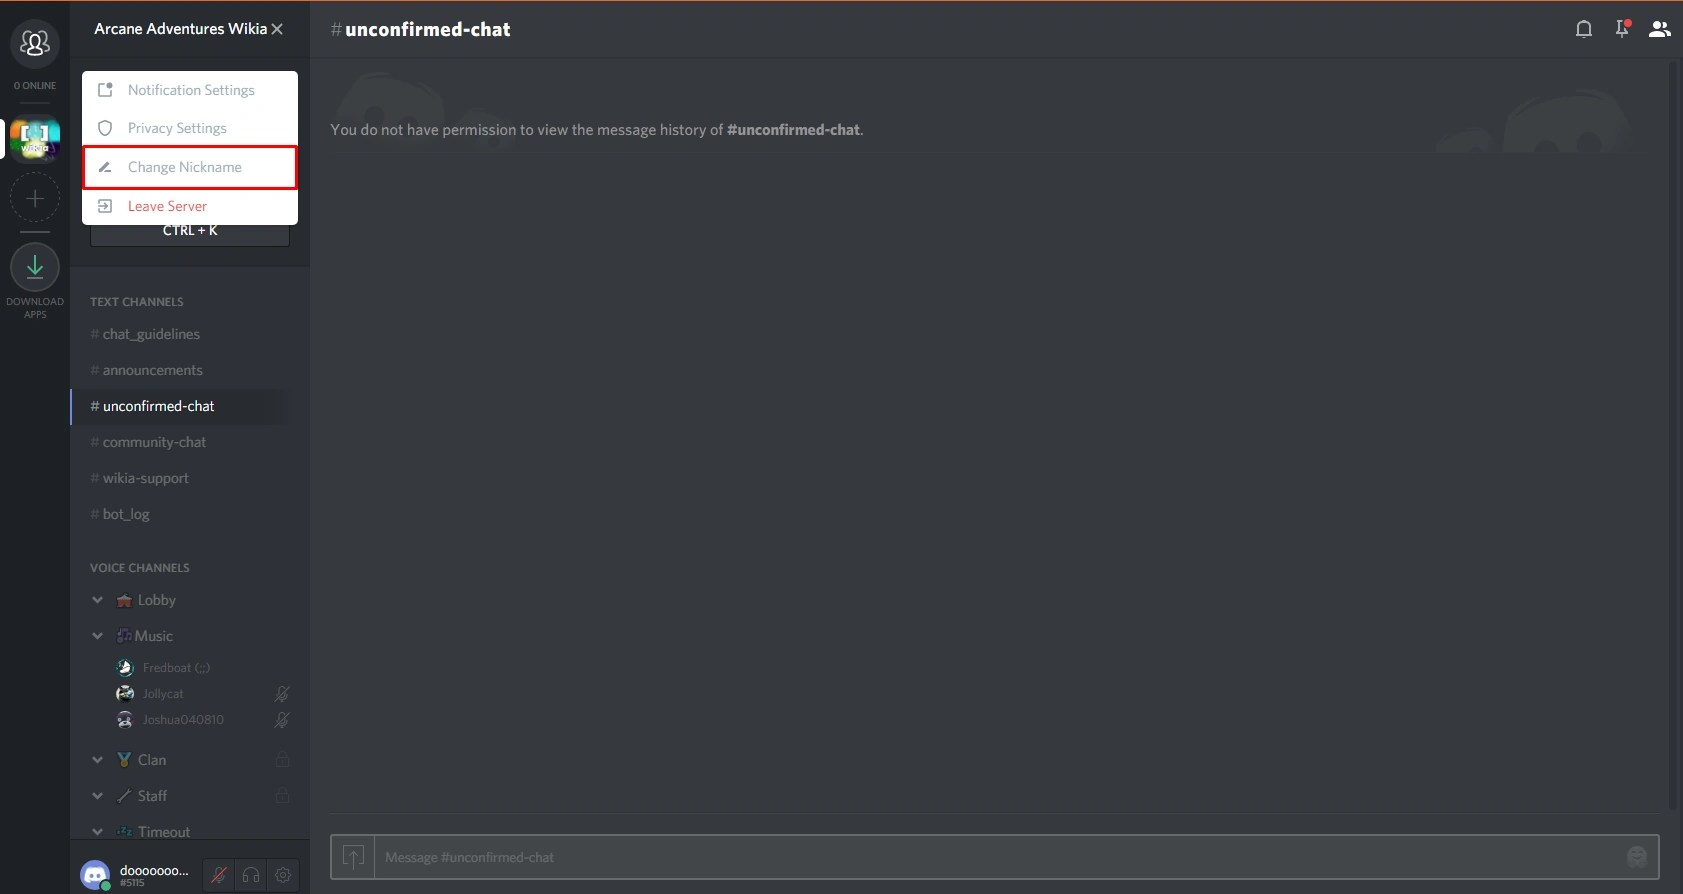 How To Lock Channels On Discord - Exploring Mars